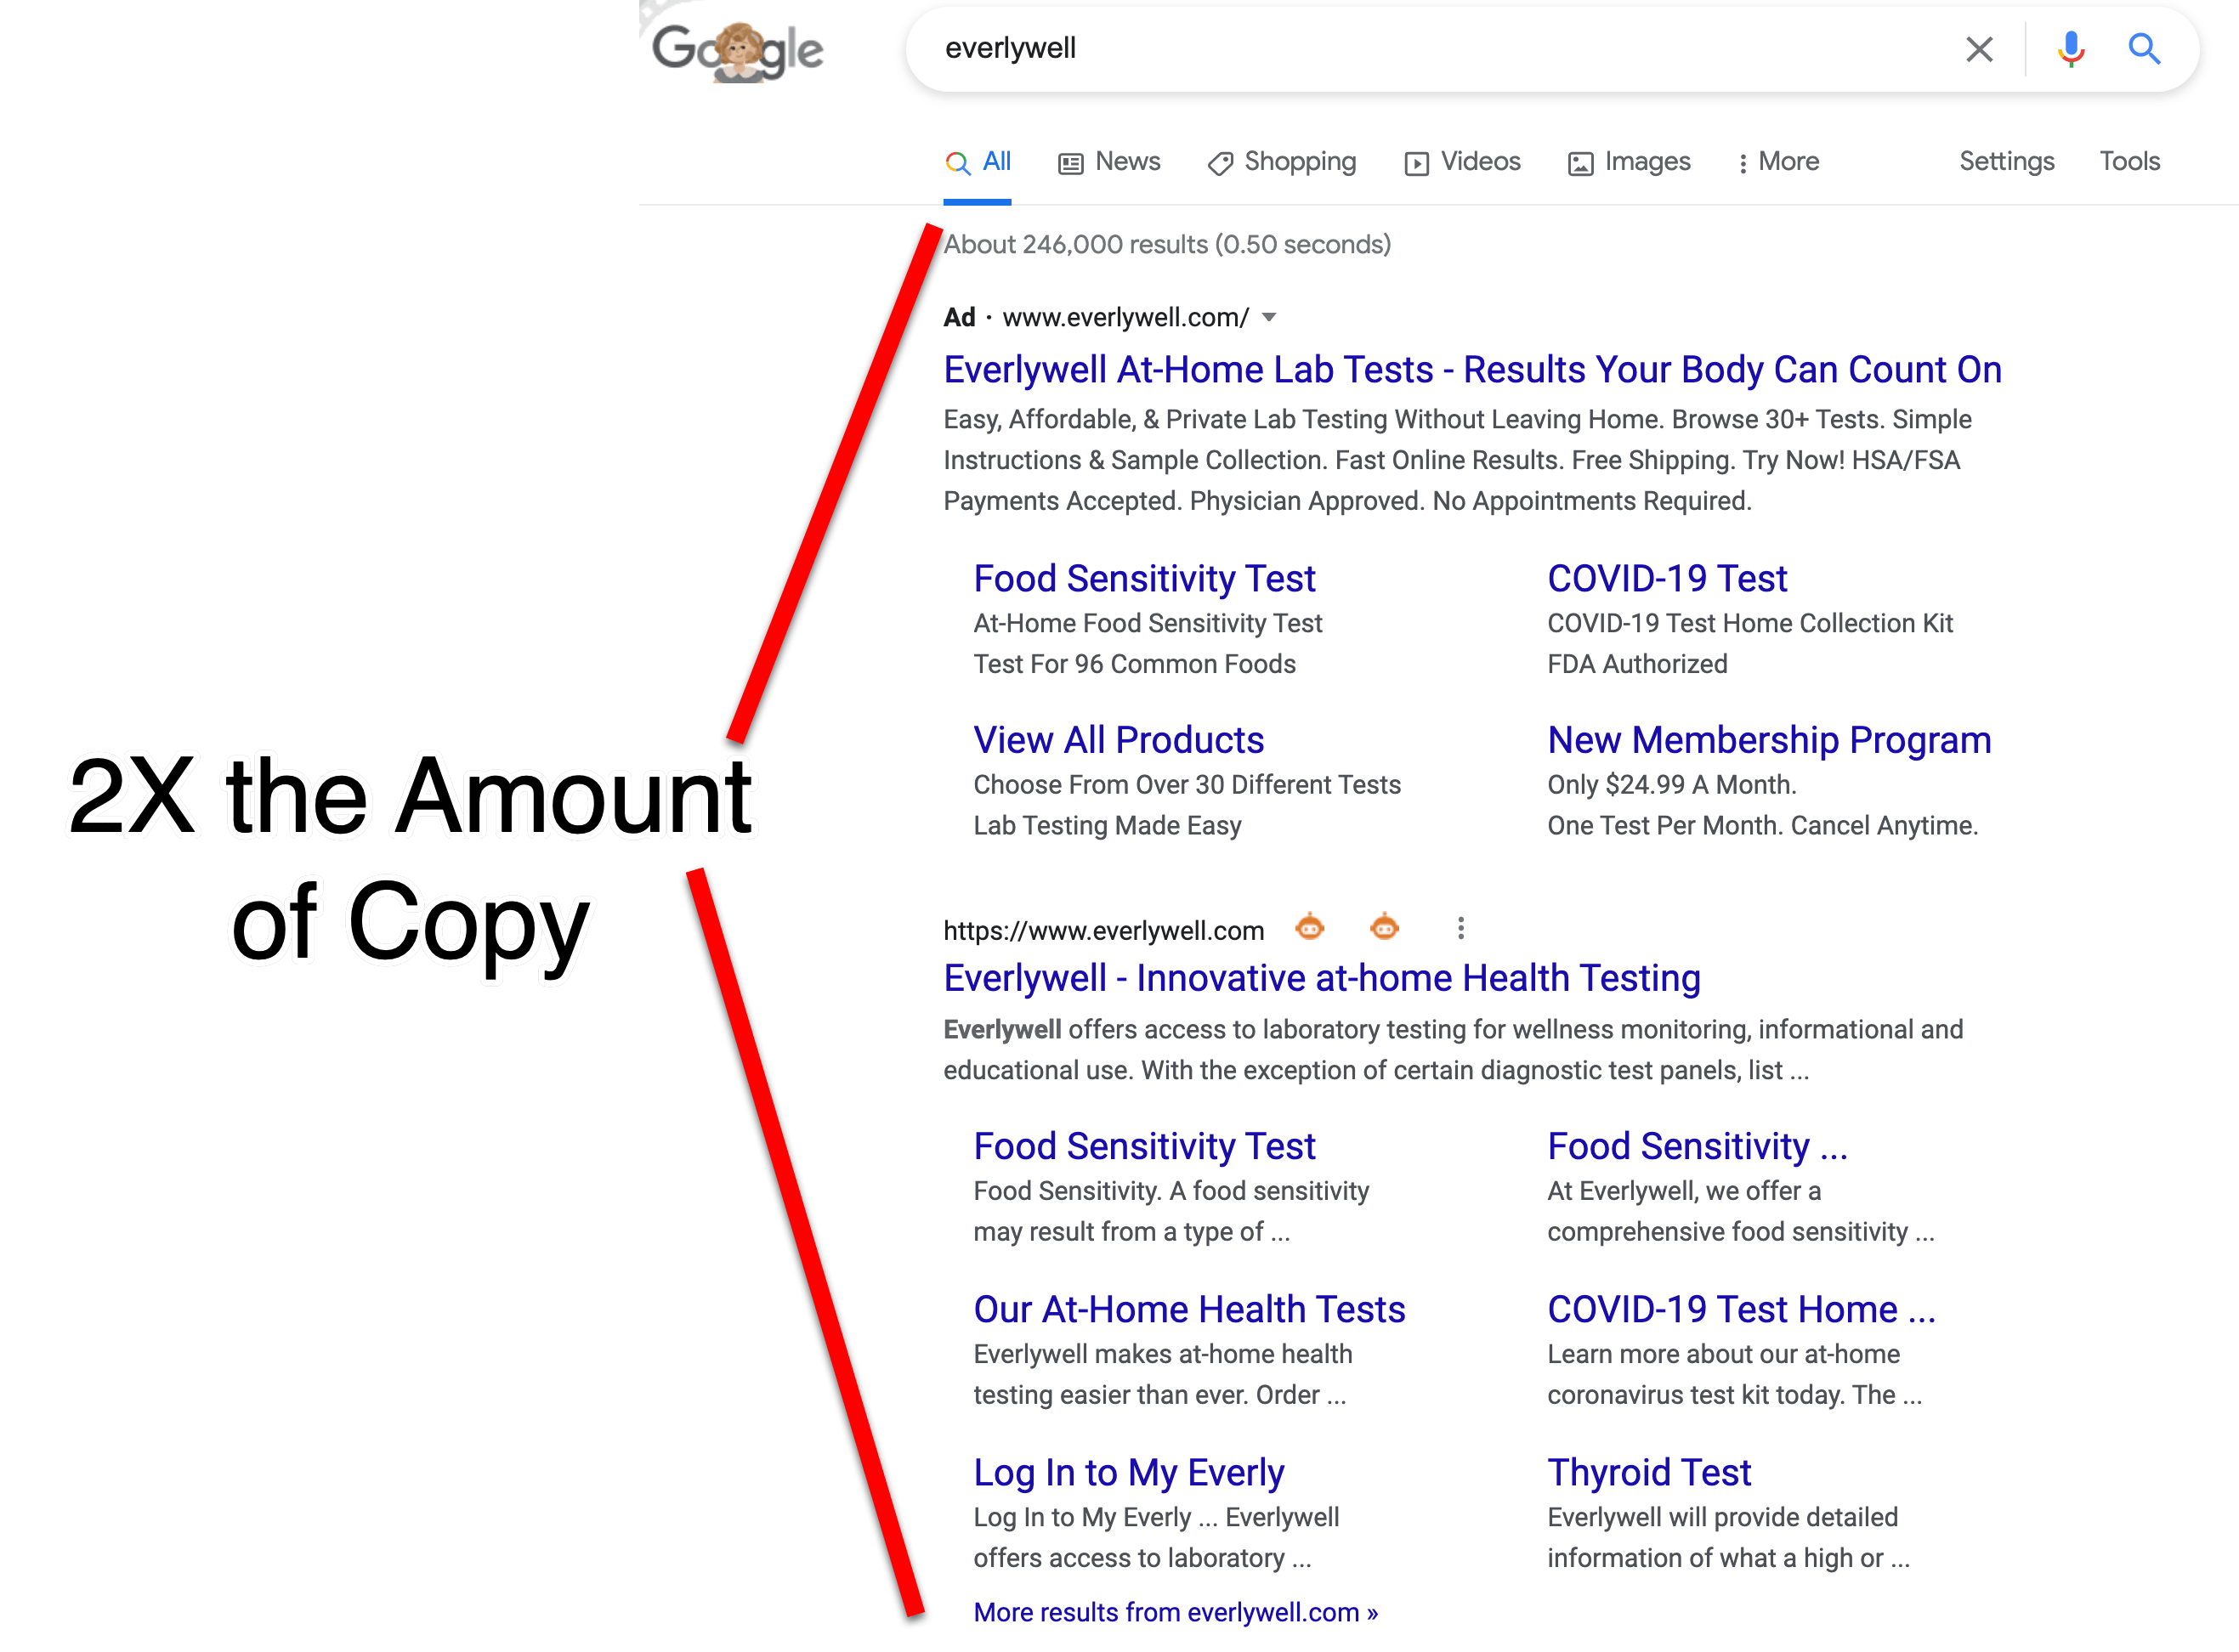 Increase CTR with more sales copy